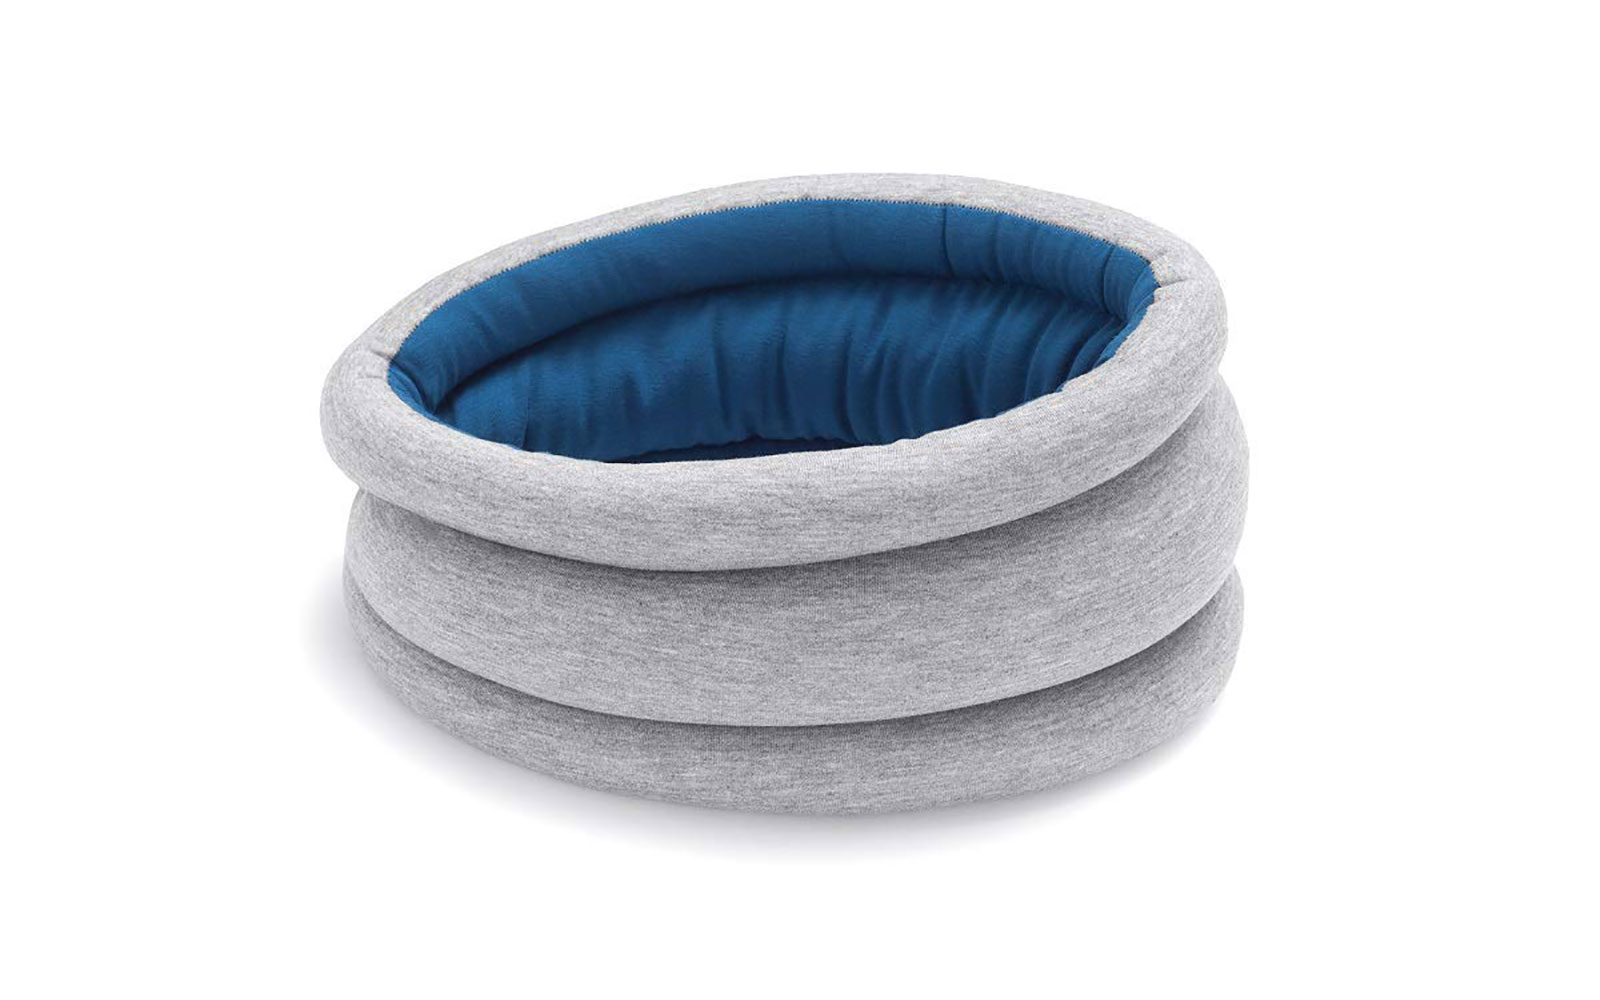 OSTRICHPILLOW Light Travel Pillow